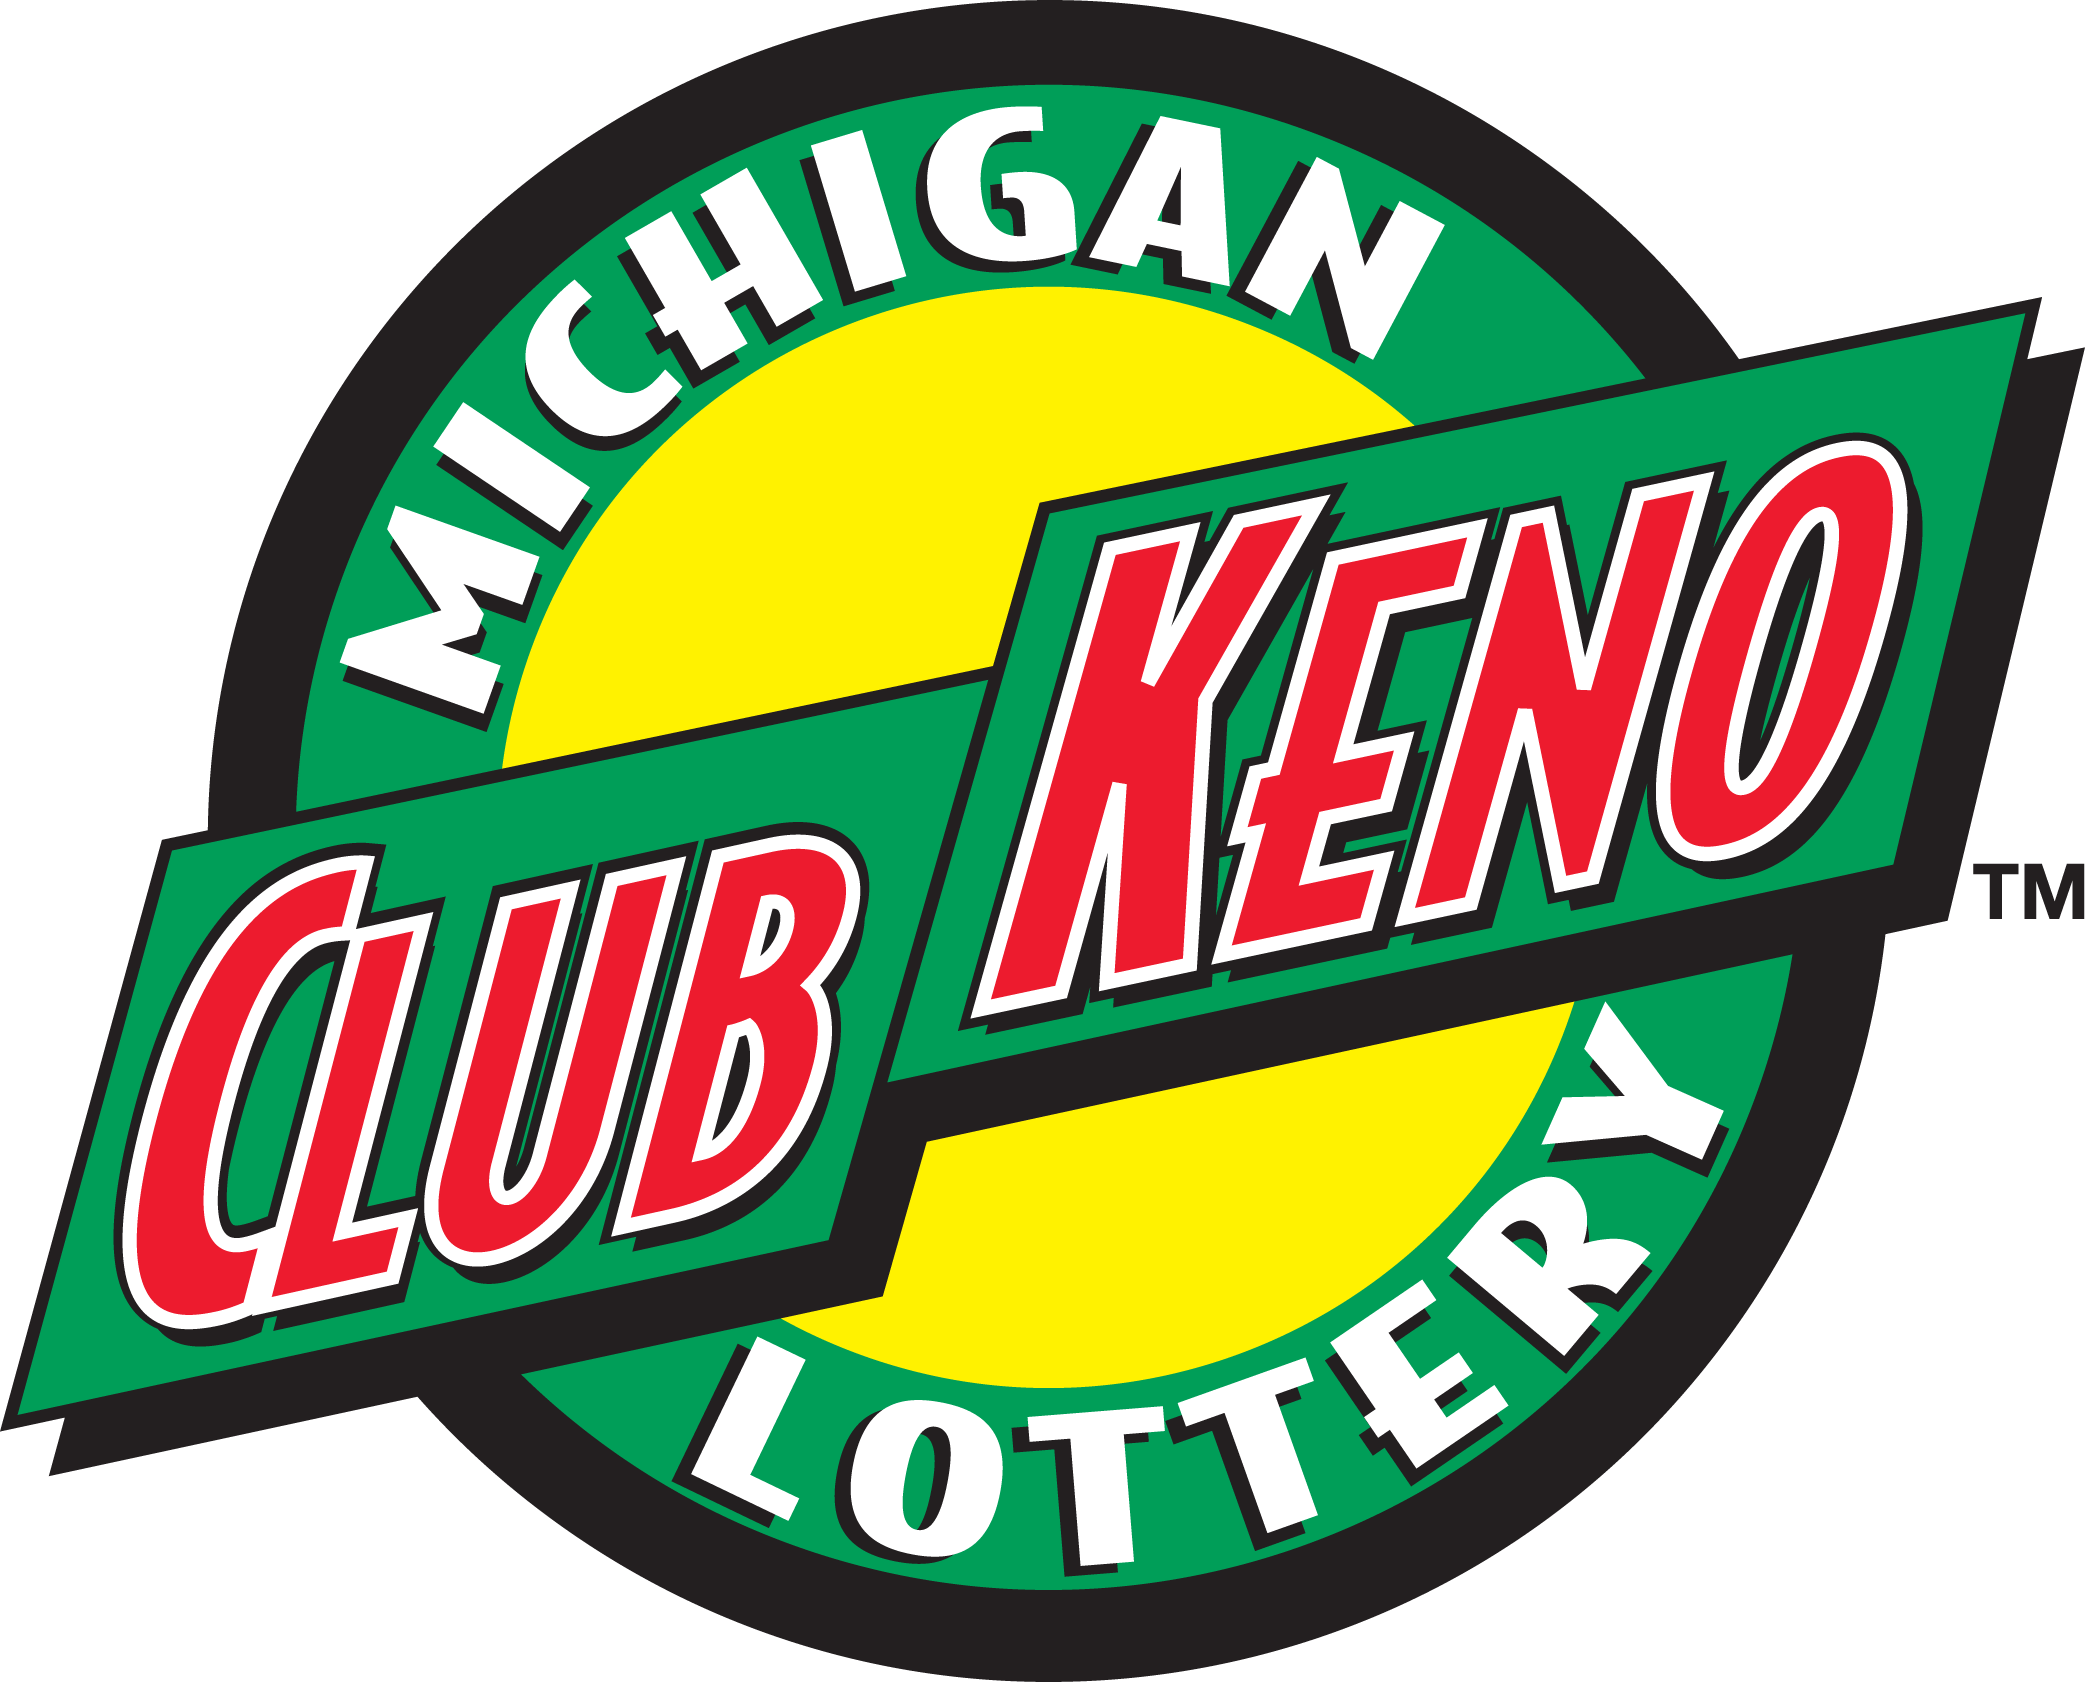 Michigan State Lottery